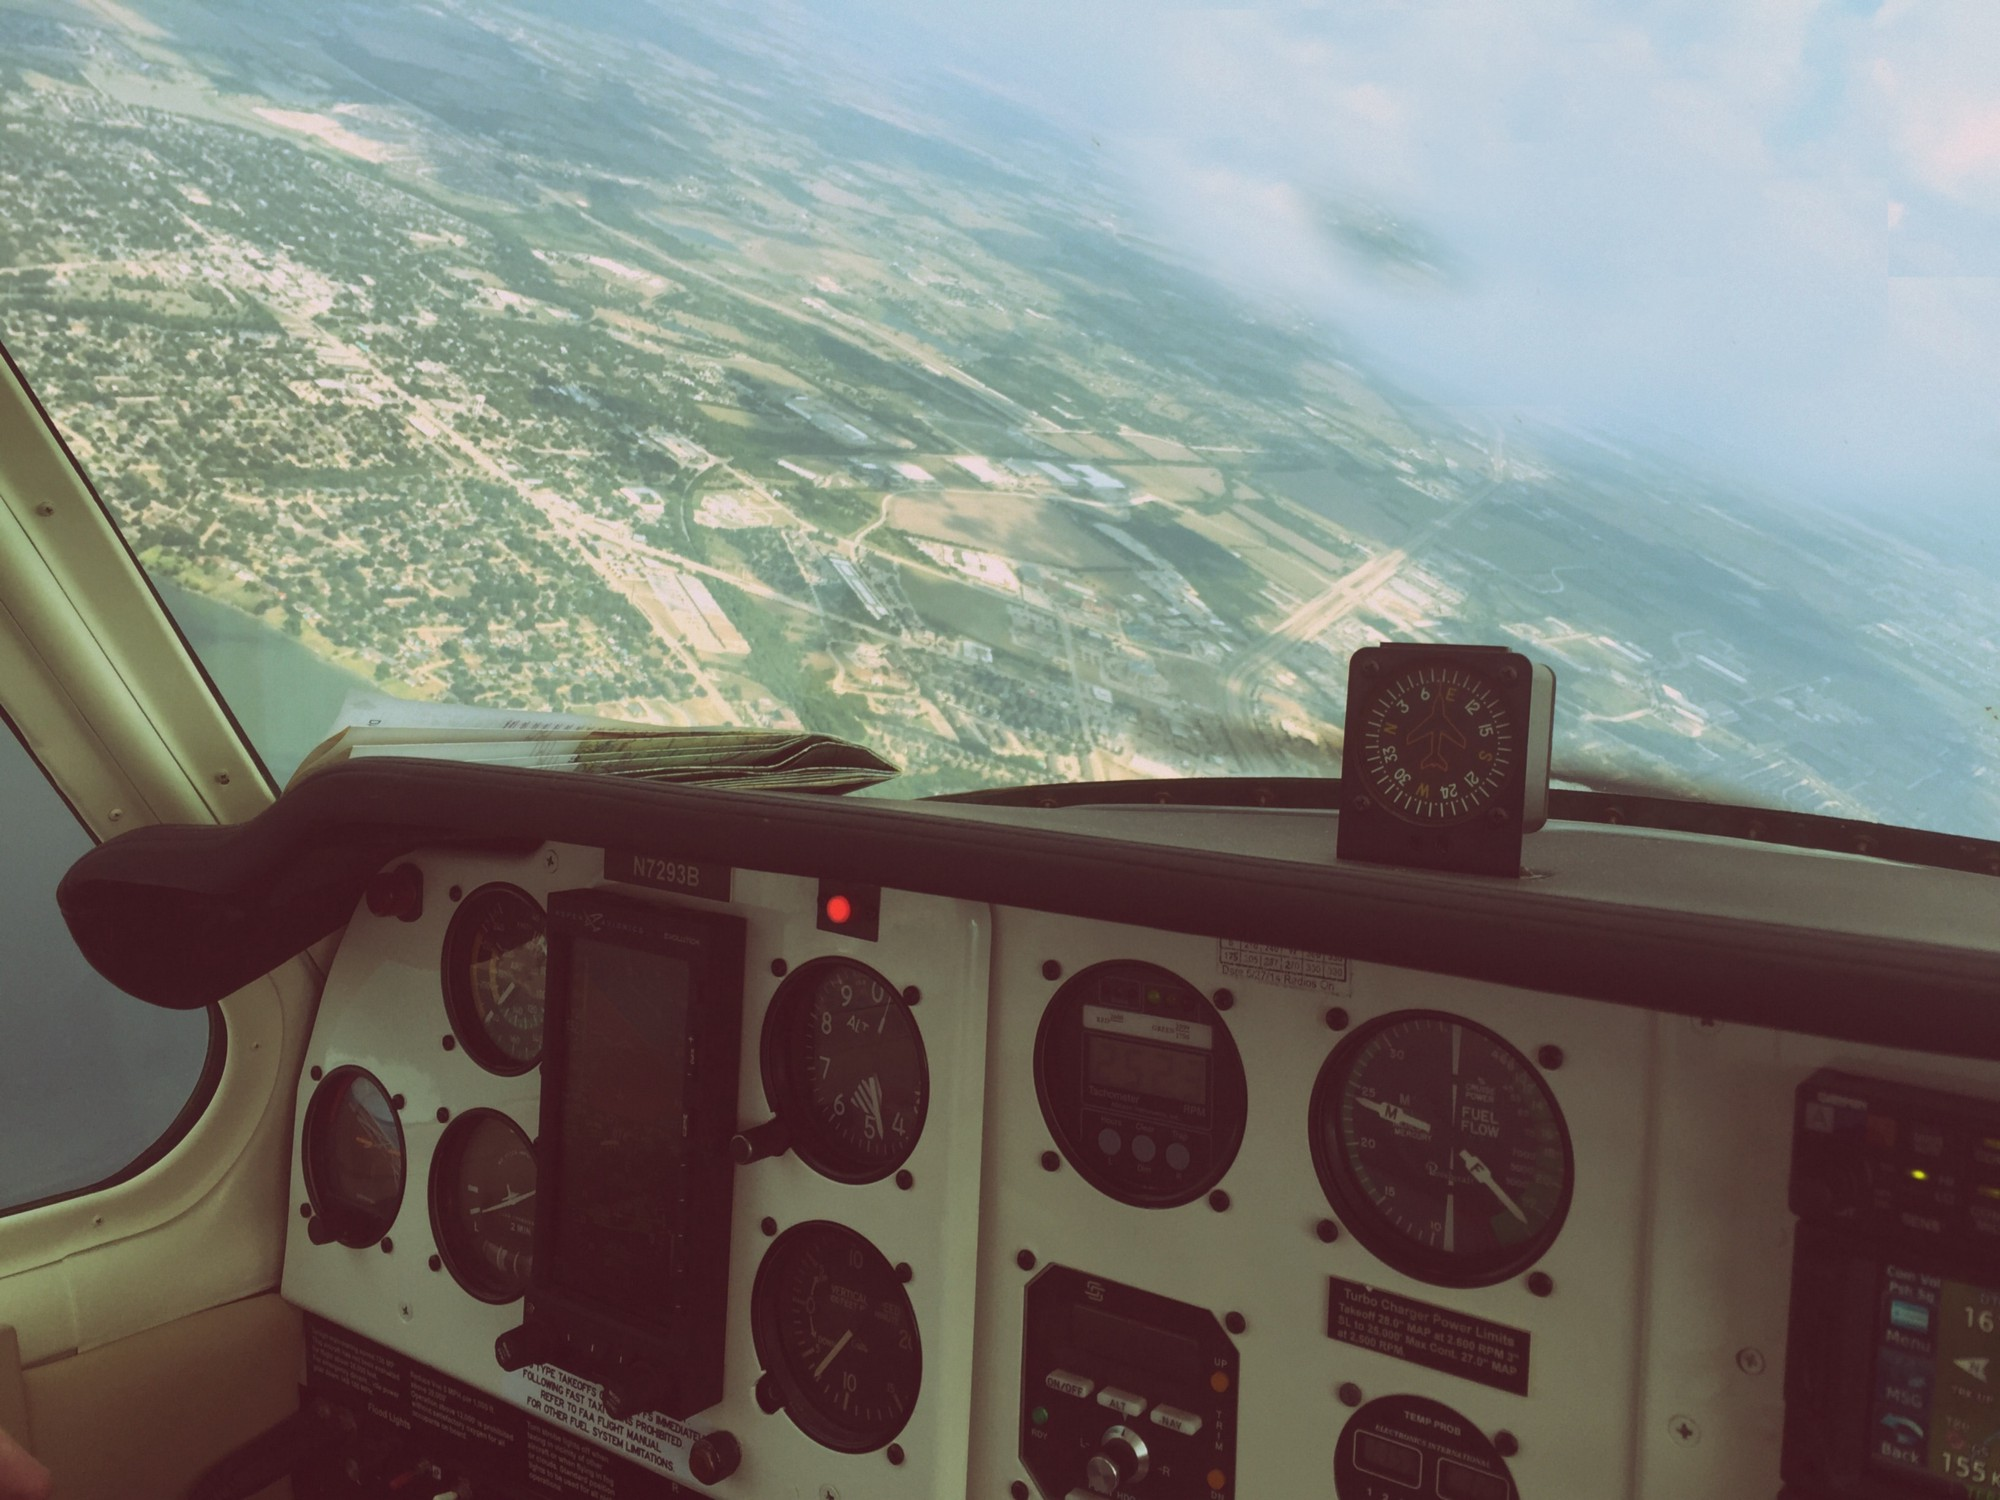 A view from the cockpit of a plane flying over the countryside